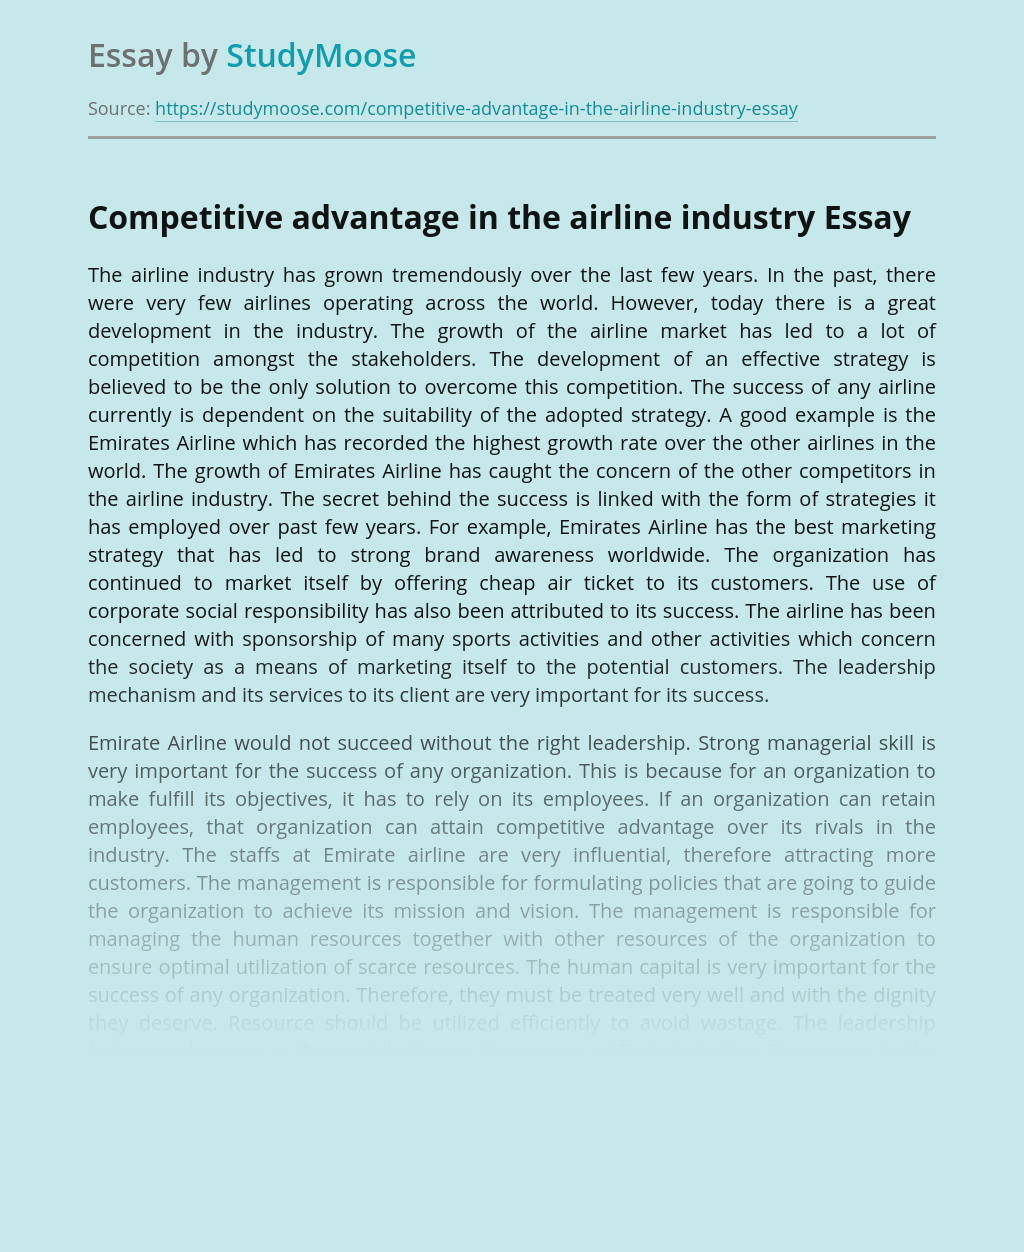 Competitive advantage in the airline industry